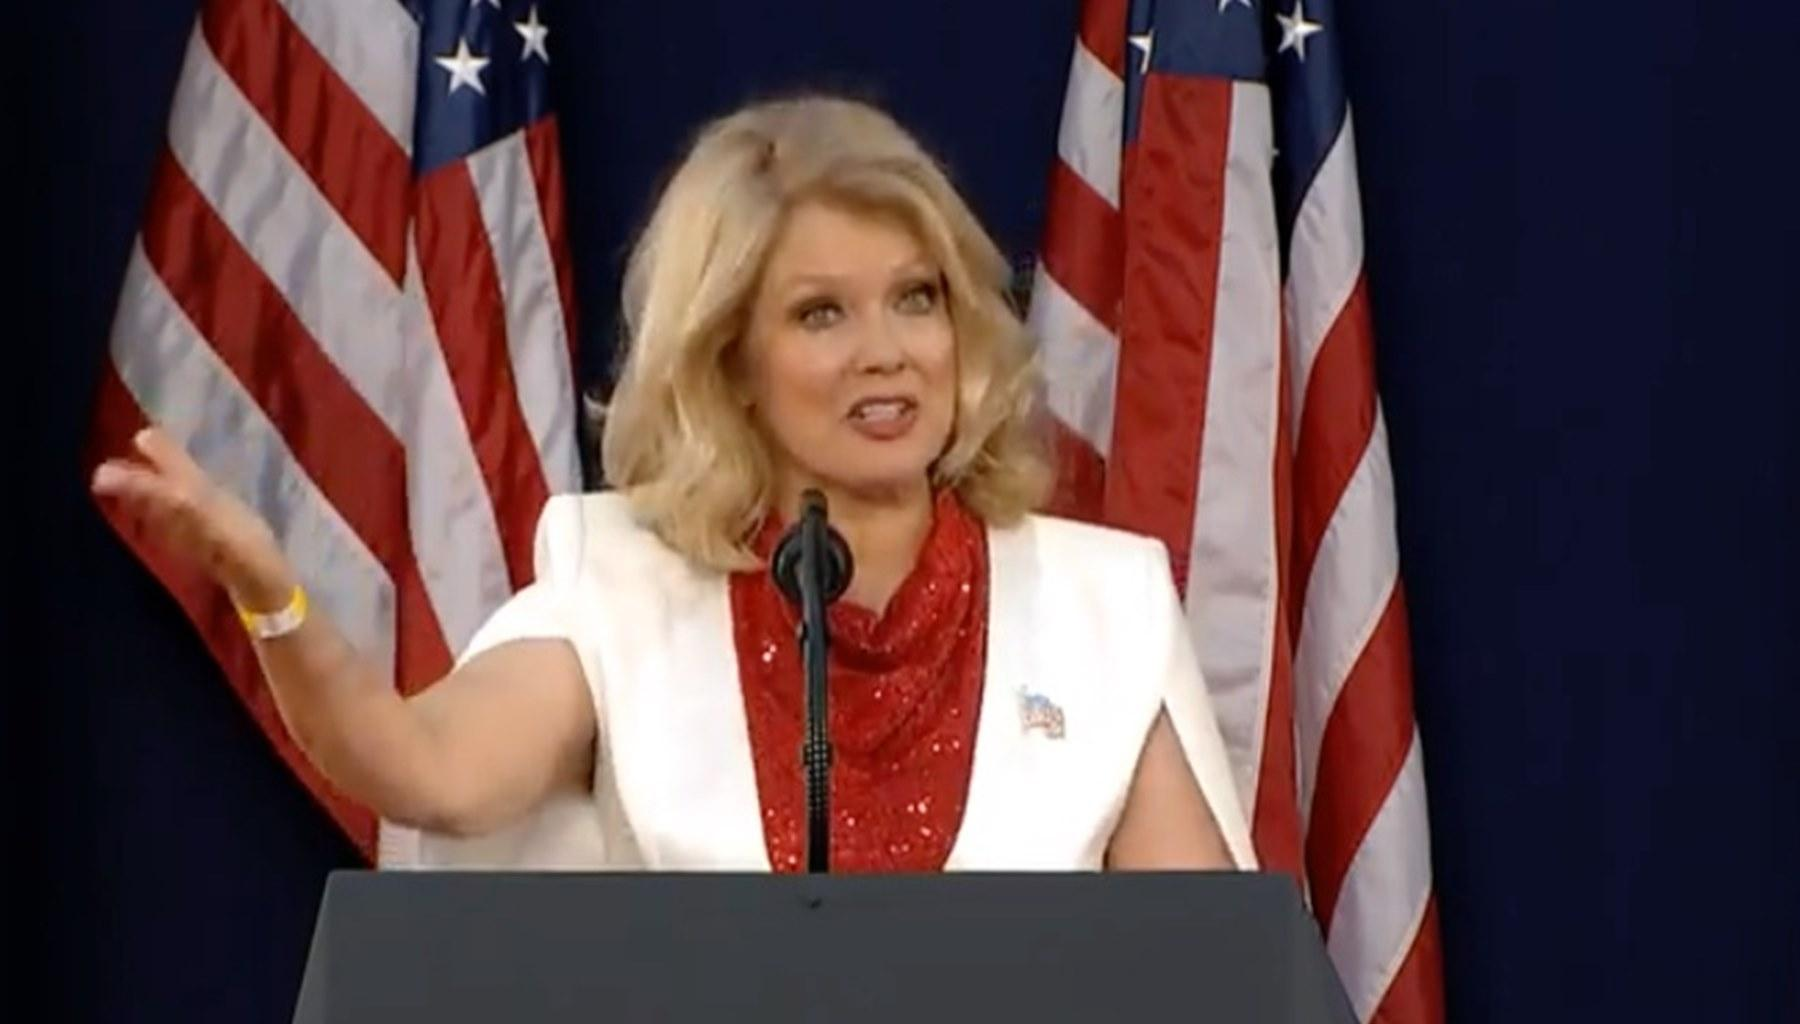 President Donald Trump's Mt. Rushmore Rally Brings Out Mary Hart As A MAGA Supporter While Don Jr.'s Girlfriend, Kimberly Guilfoyle, Tests Positive for COVID-19